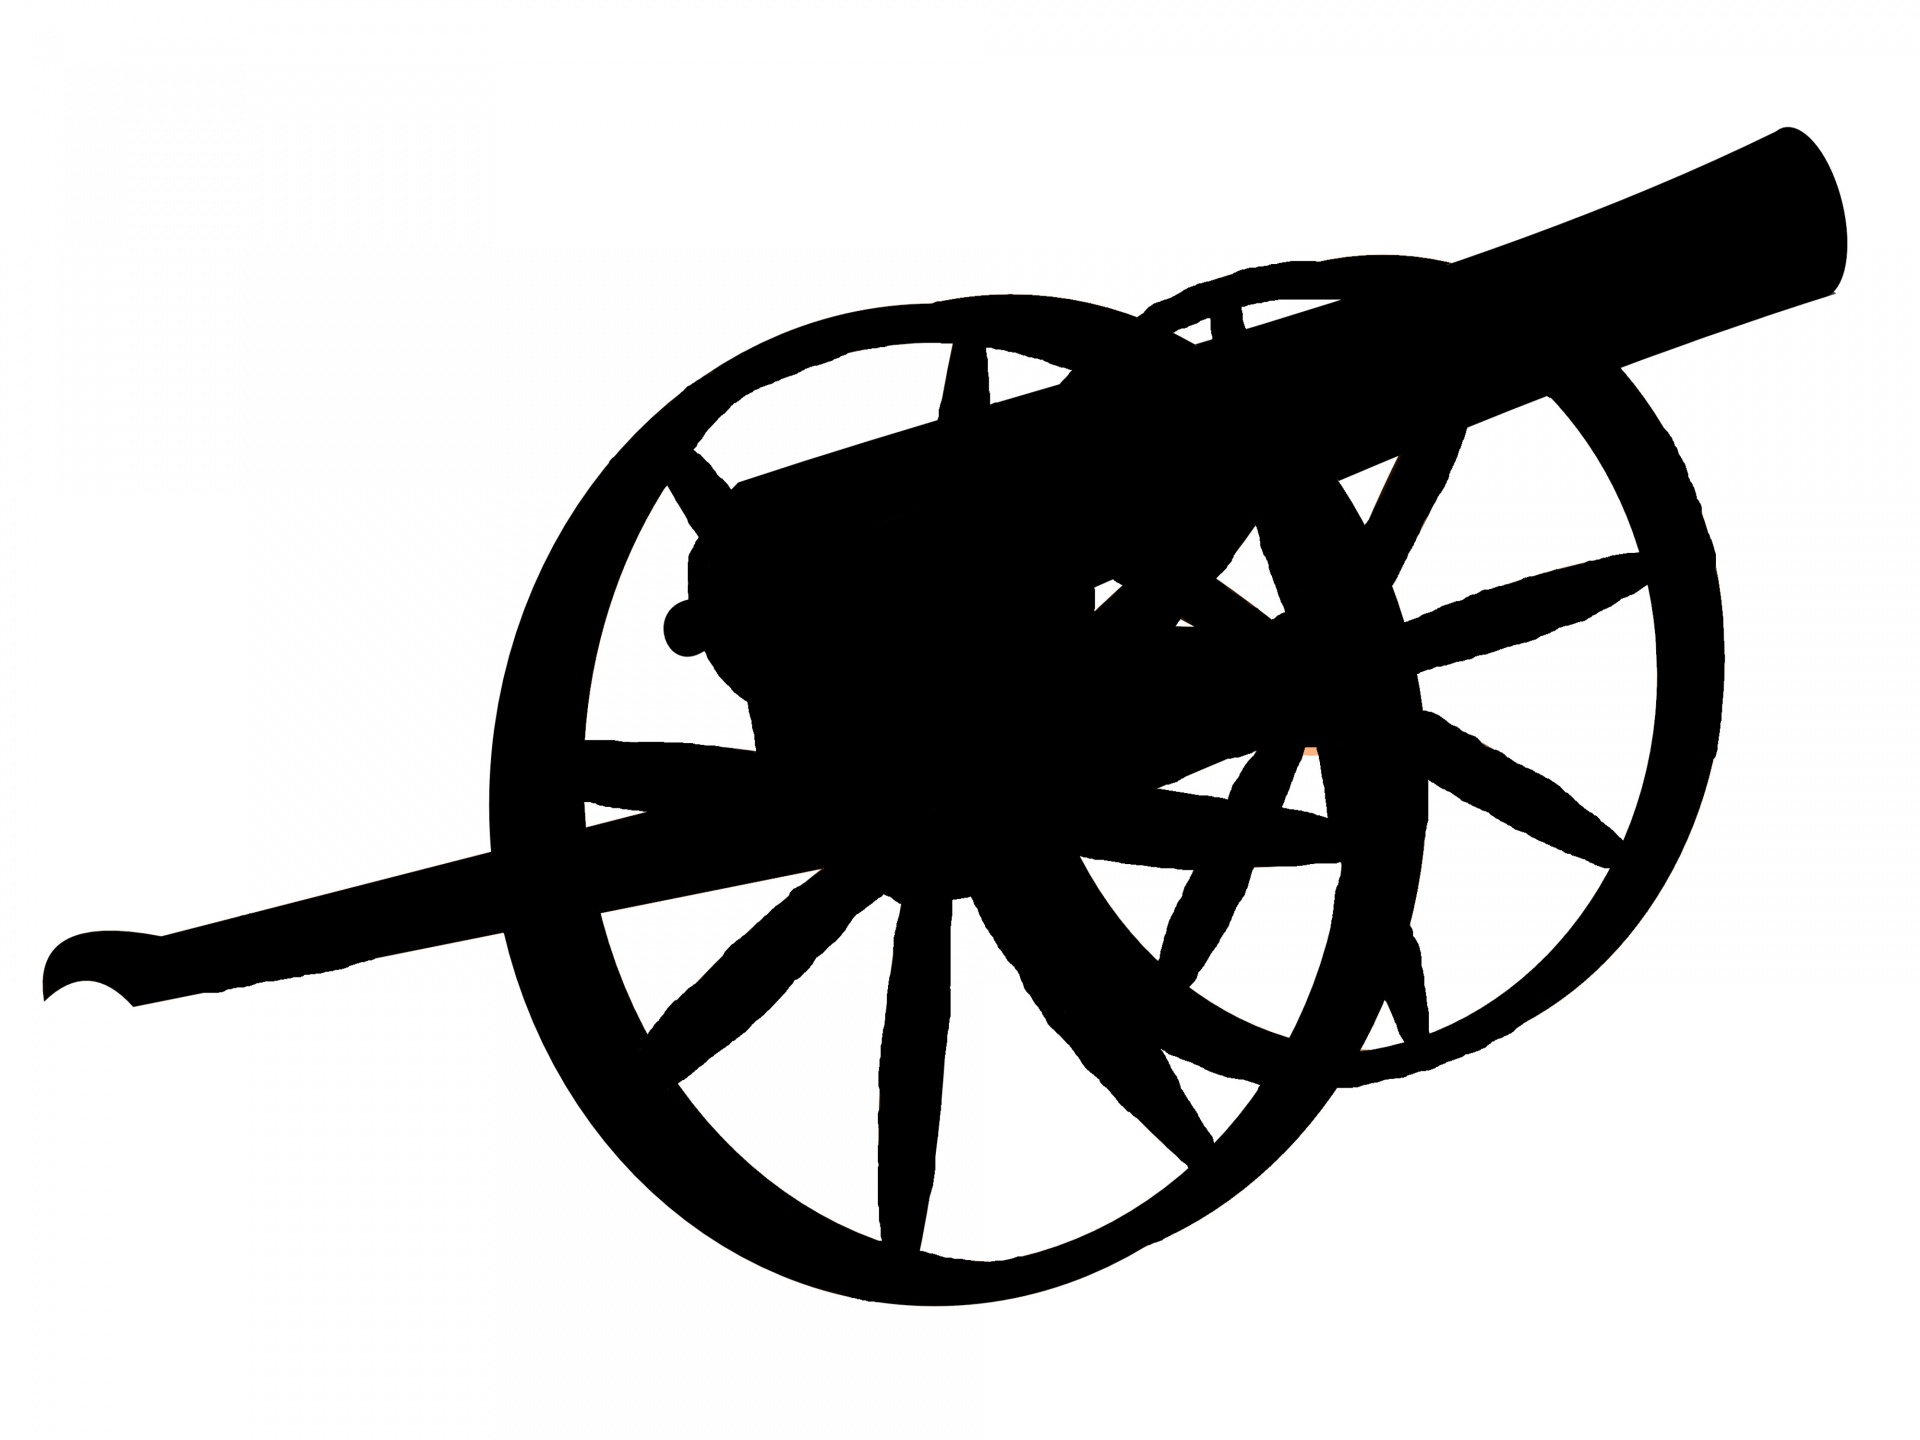 Civil war artillery clipart svg royalty free stock Silhouette,outline,shadow,clip art,j r libby - free photo from ... svg royalty free stock